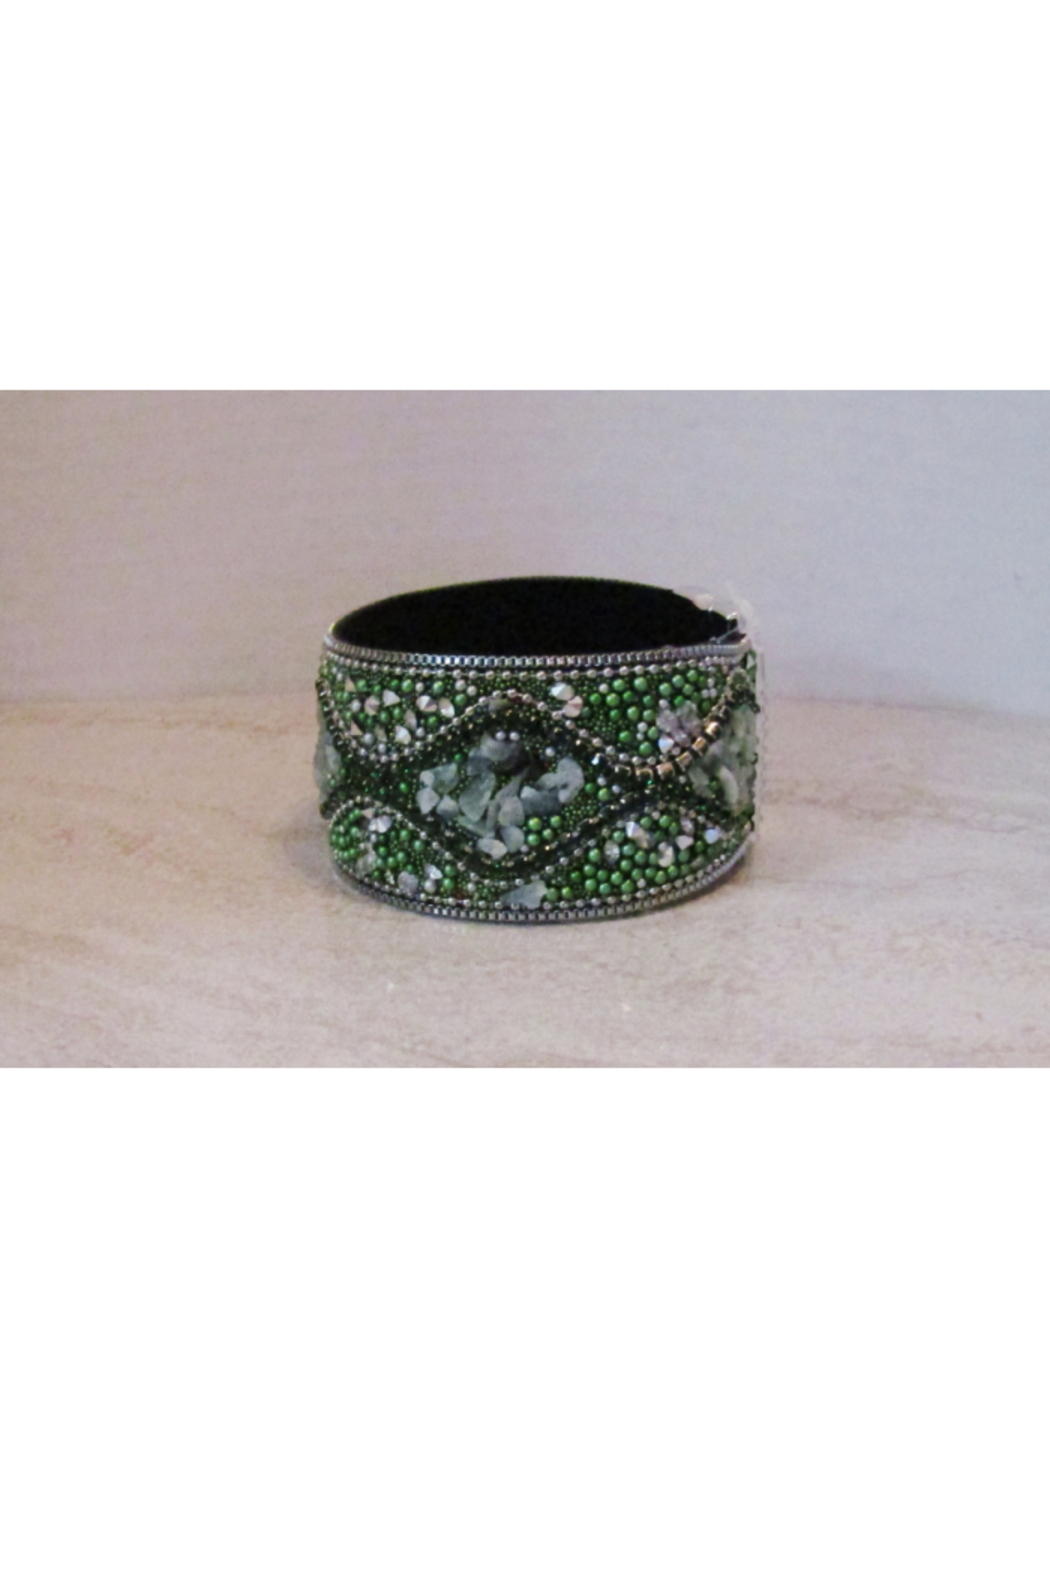 American Legacy Serenity Mosaic Stone Bracelet - Green - Main Image